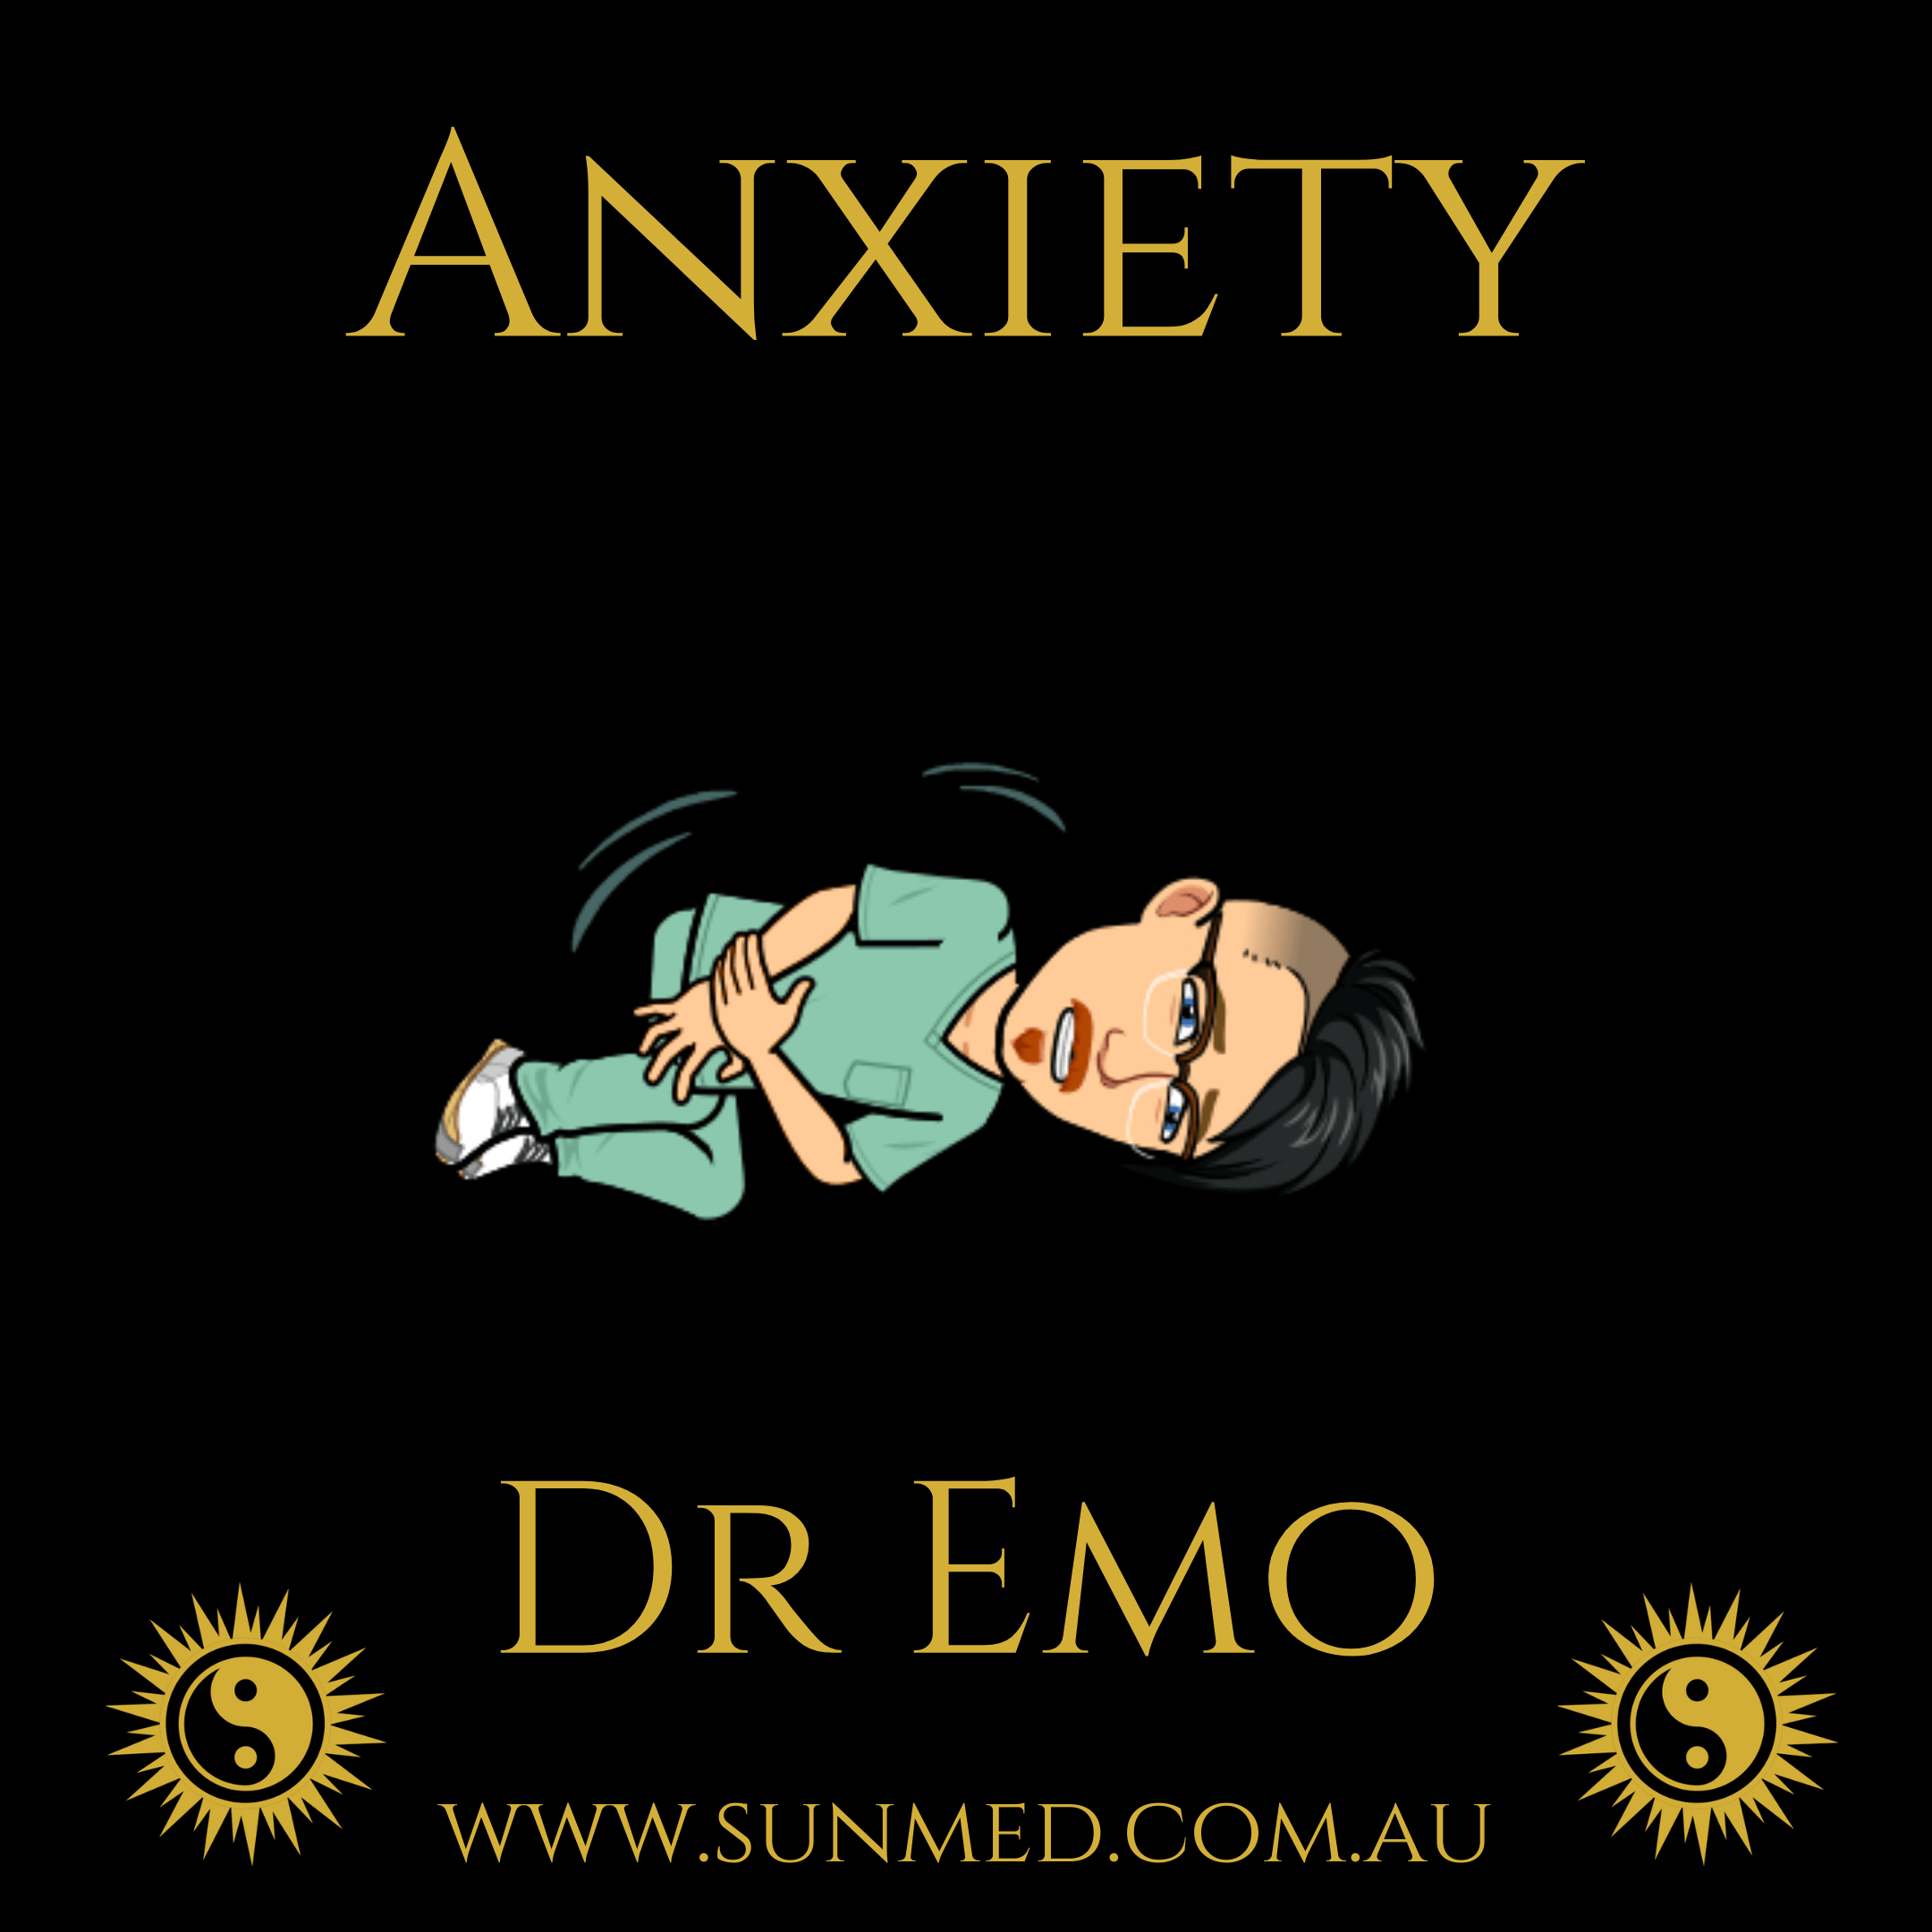 Sun Med Community Wellness Anxiety from Xanax to Zenx - Dr Emo Anxiety Banner